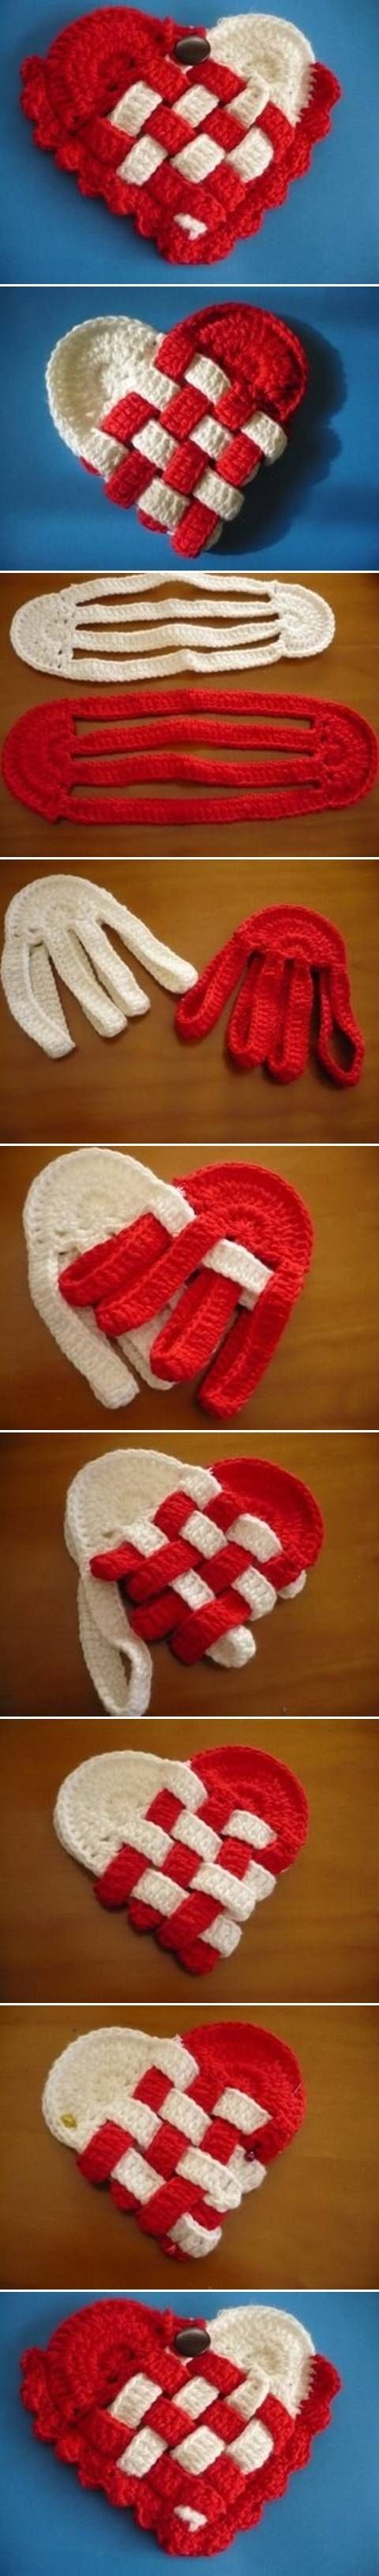 Tumblr+crochet | Simple Crochet Heart Pictures, Photos, and Images for Facebook, Tumblr ...